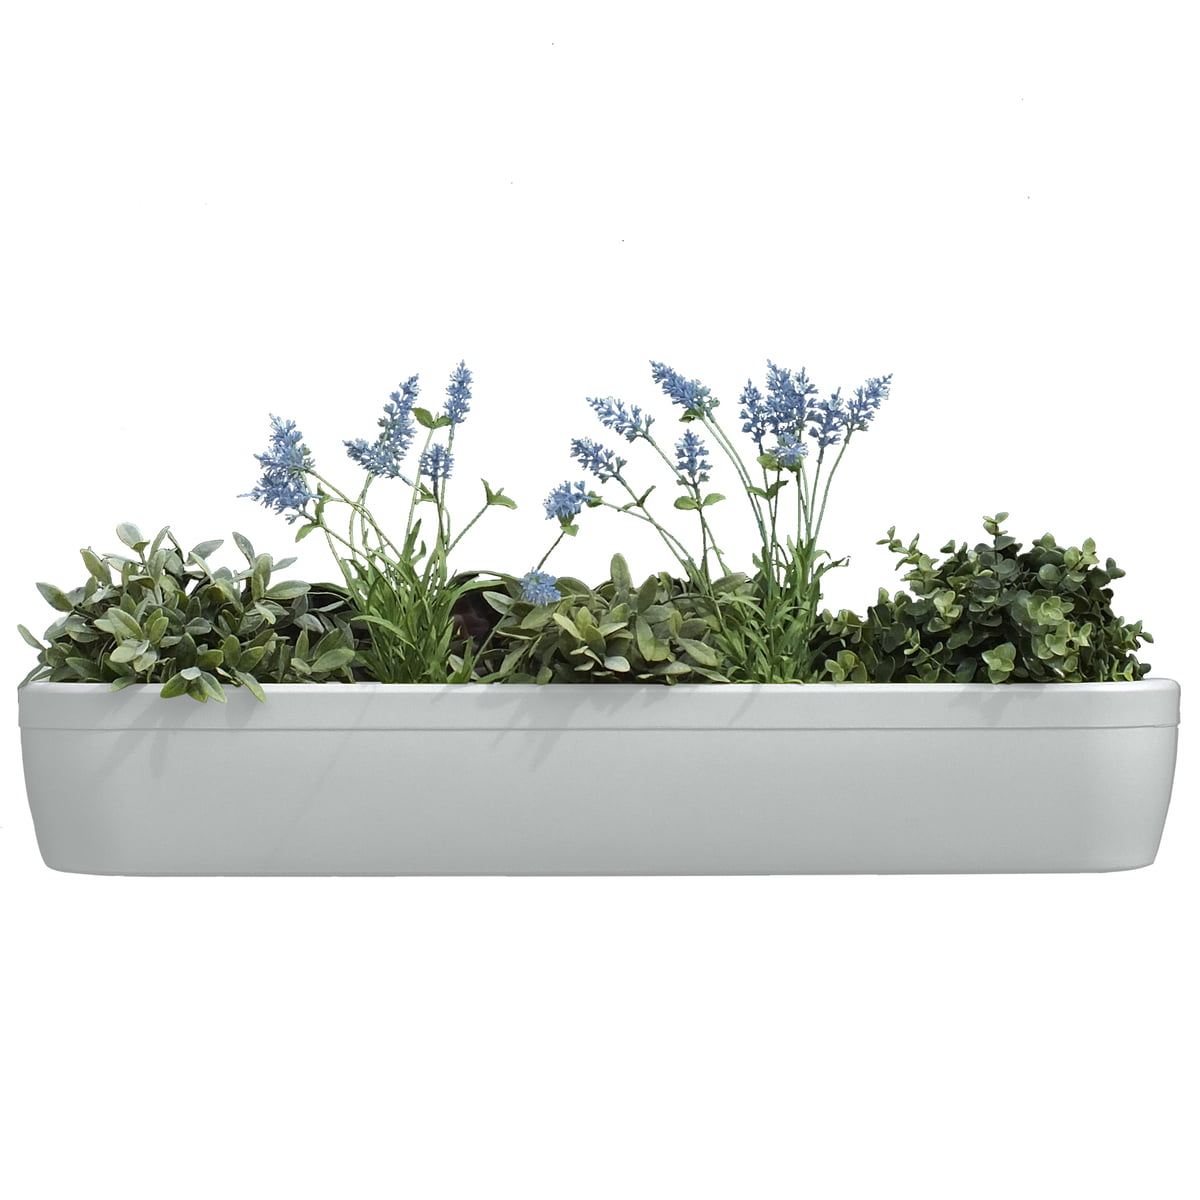 Flower box by rephorm in the design shop the windowgreen window sill flower box by rephorm in white mightylinksfo